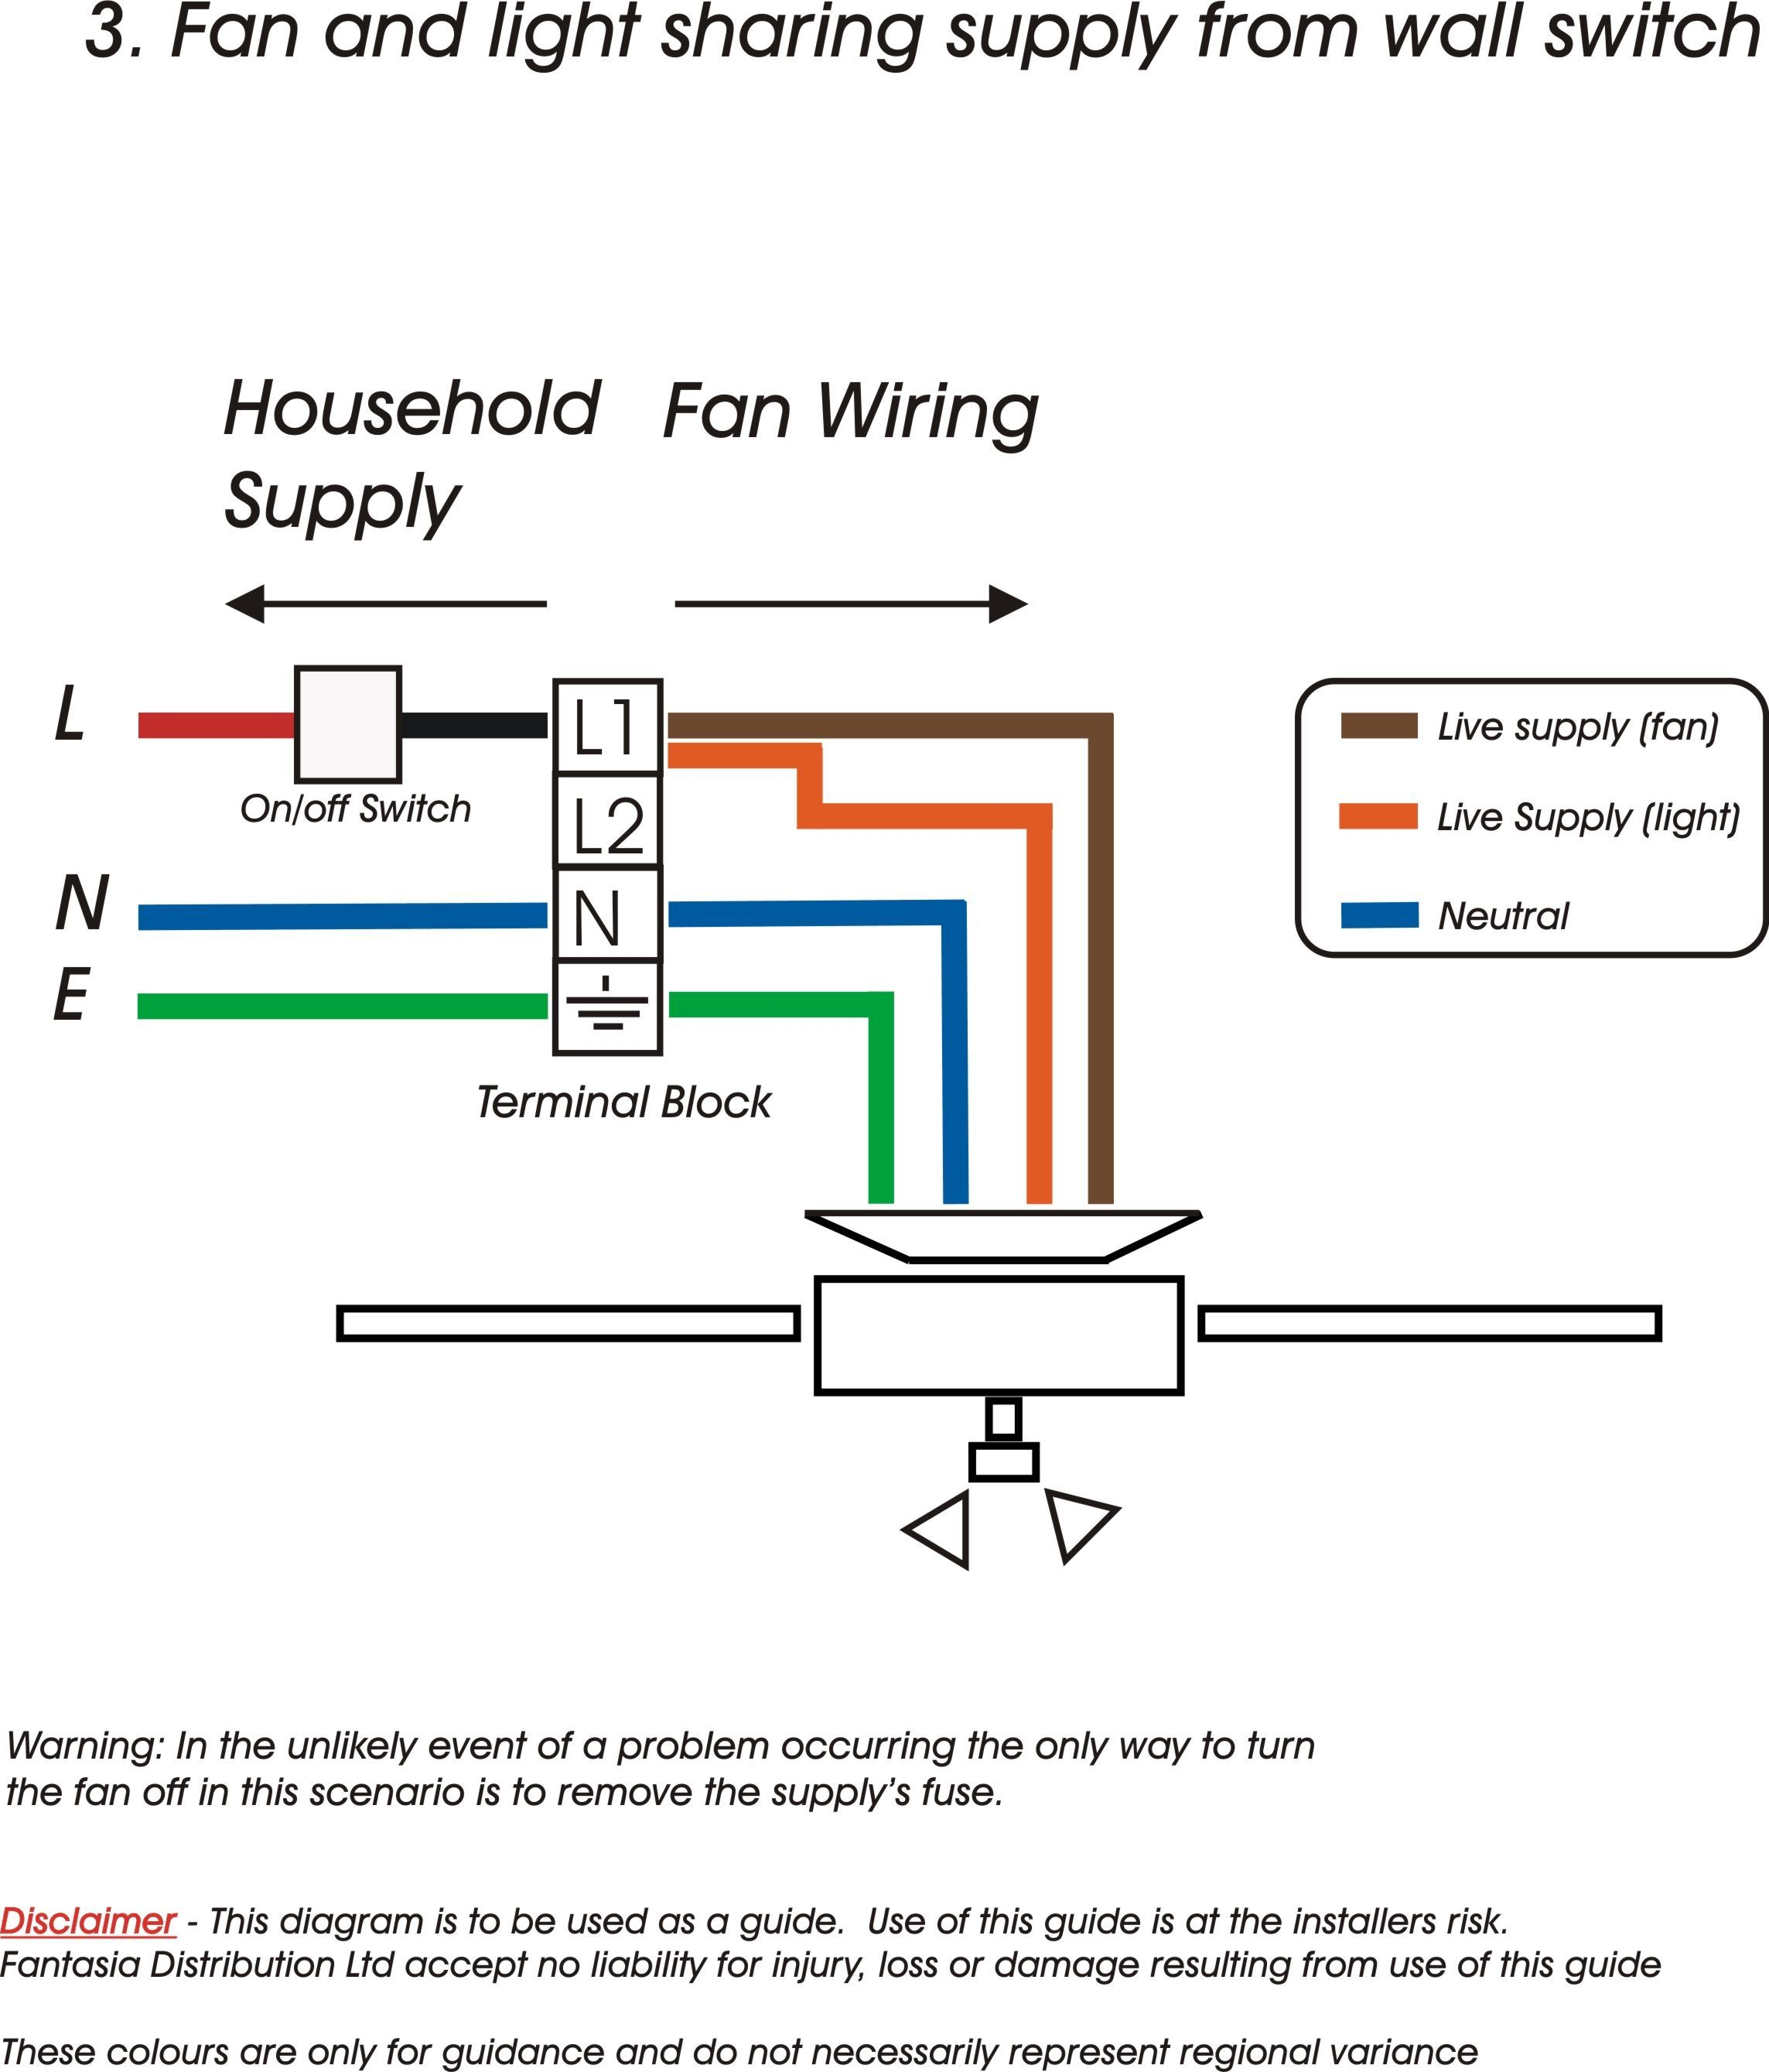 a6e72fabacaaa74231f750a53a3d3cb0 ceiling fan wall switch wiring diagram ladysro info guest spotlight wiring diagram at alyssarenee.co